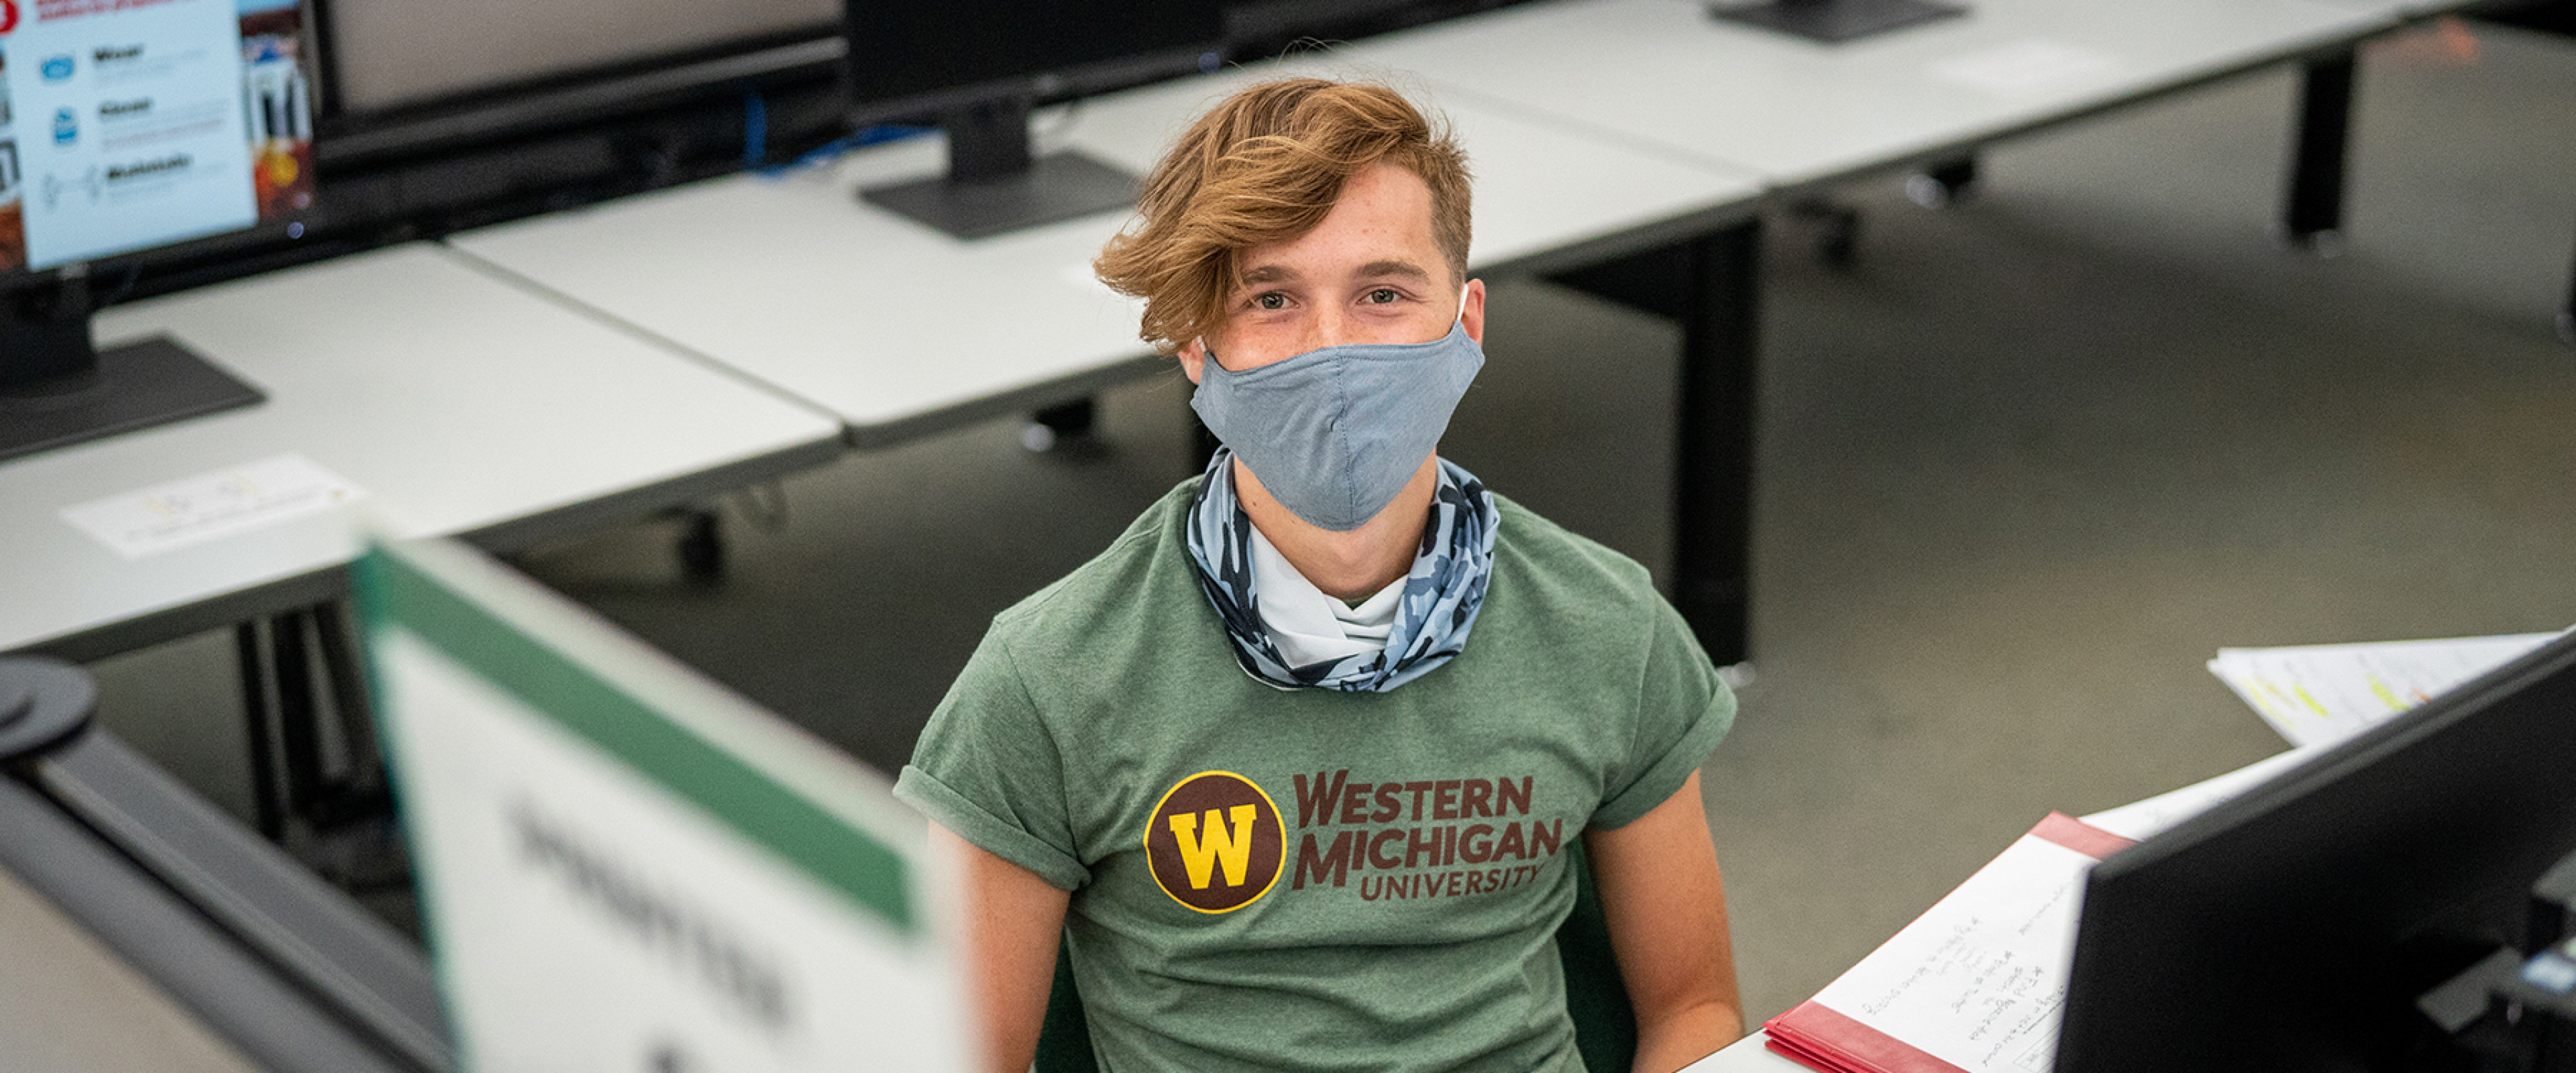 Student sitting in front of a computer wearing a mask